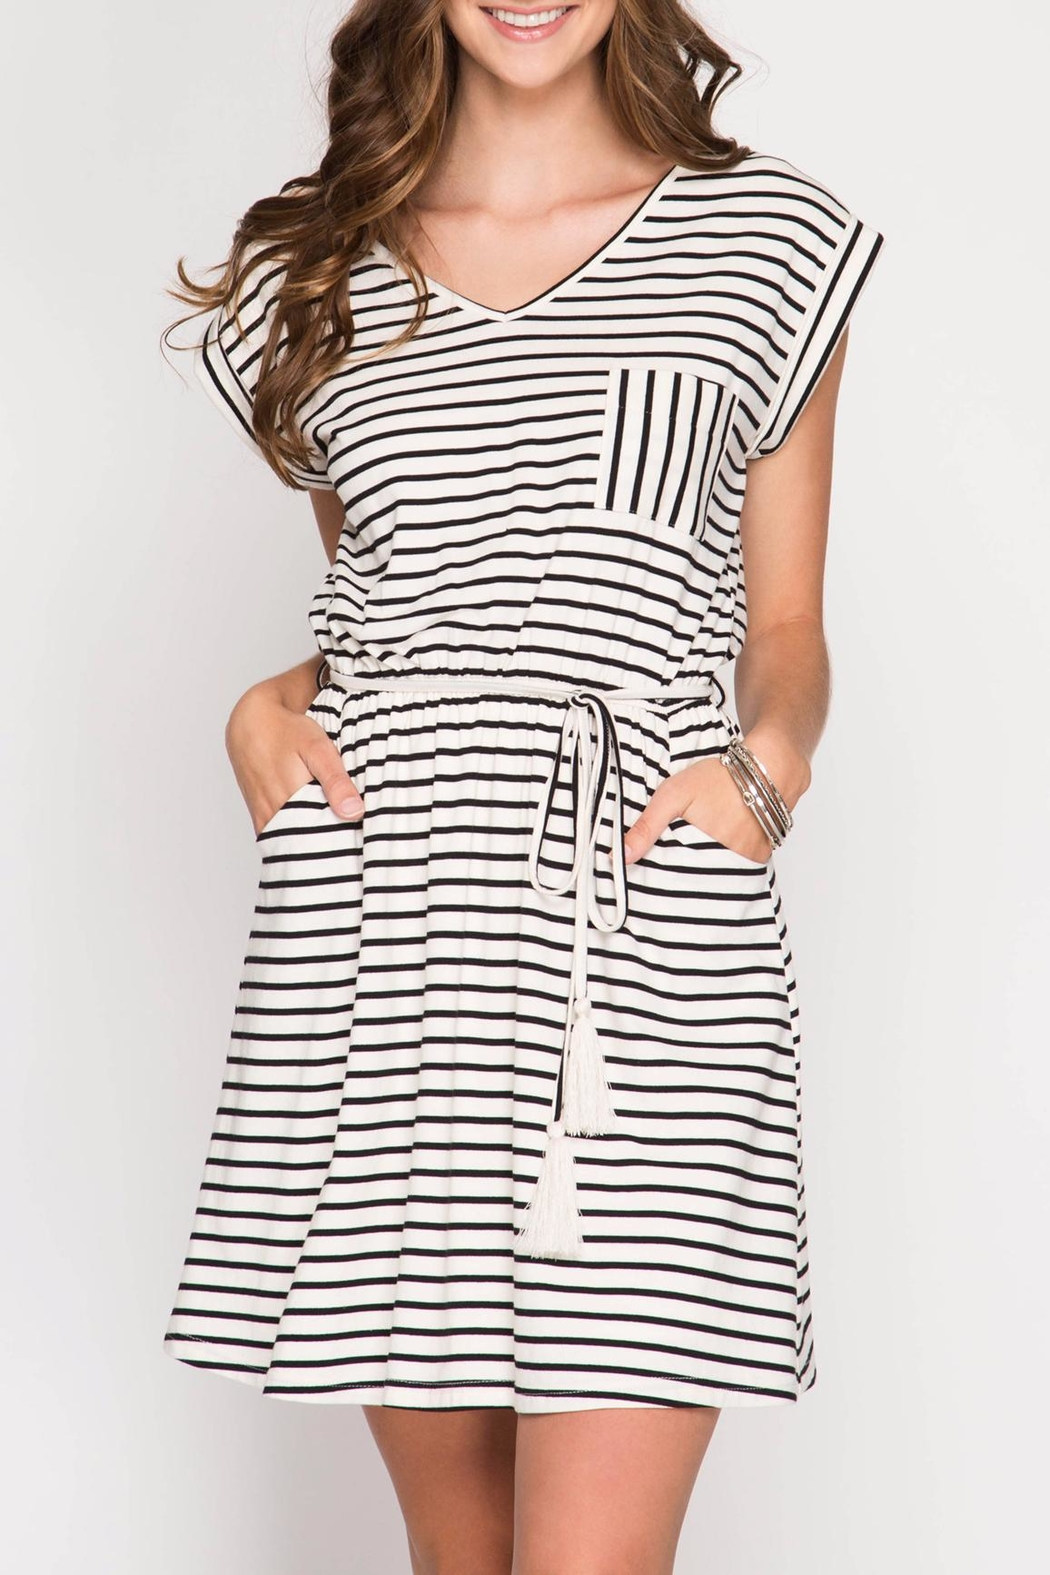 She + Sky Knit Striped Dress - Front Full Image